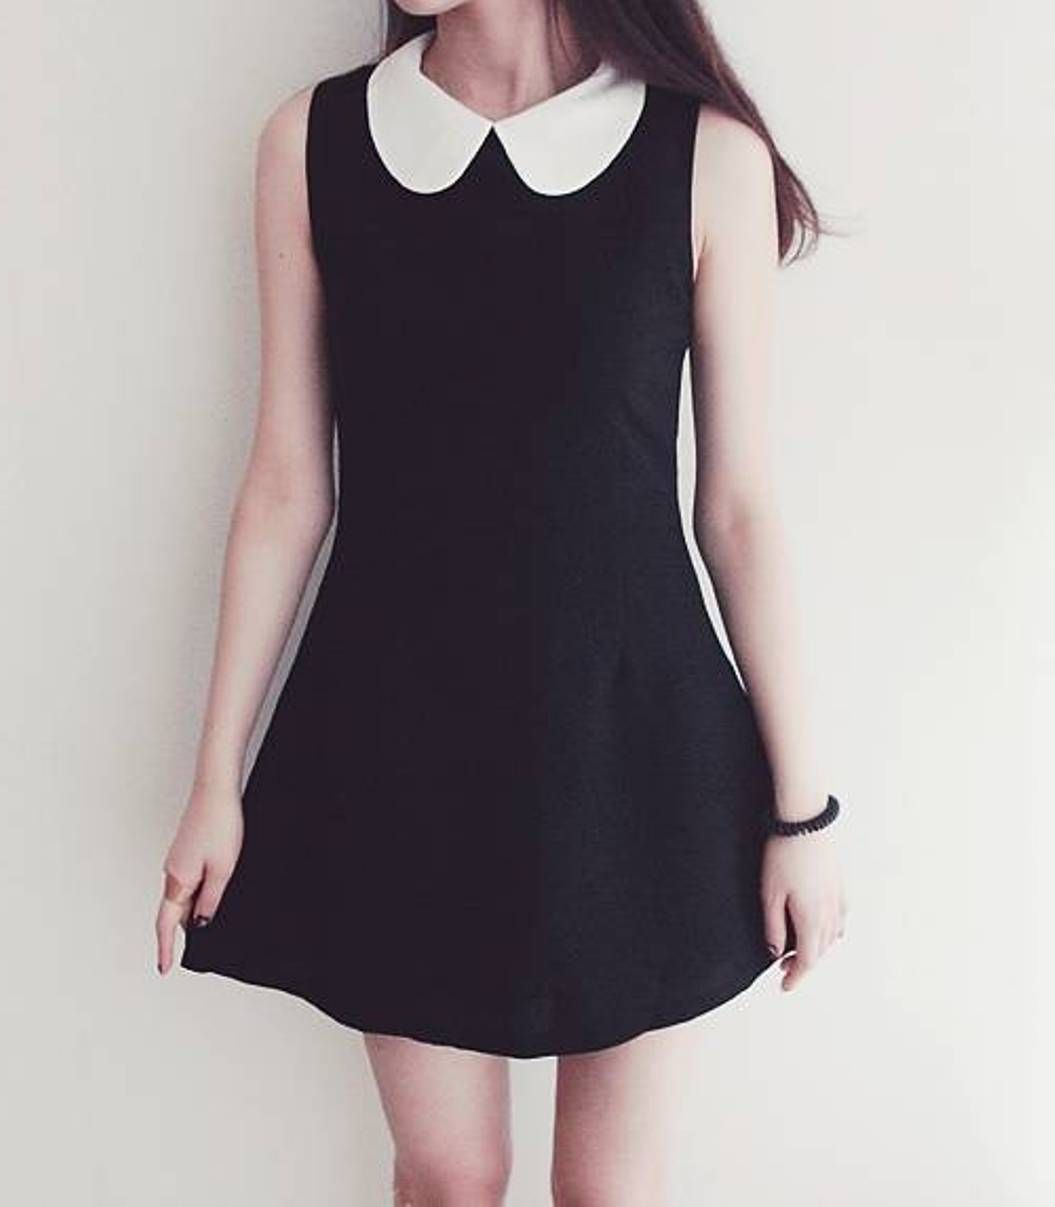 Peter pan style dress